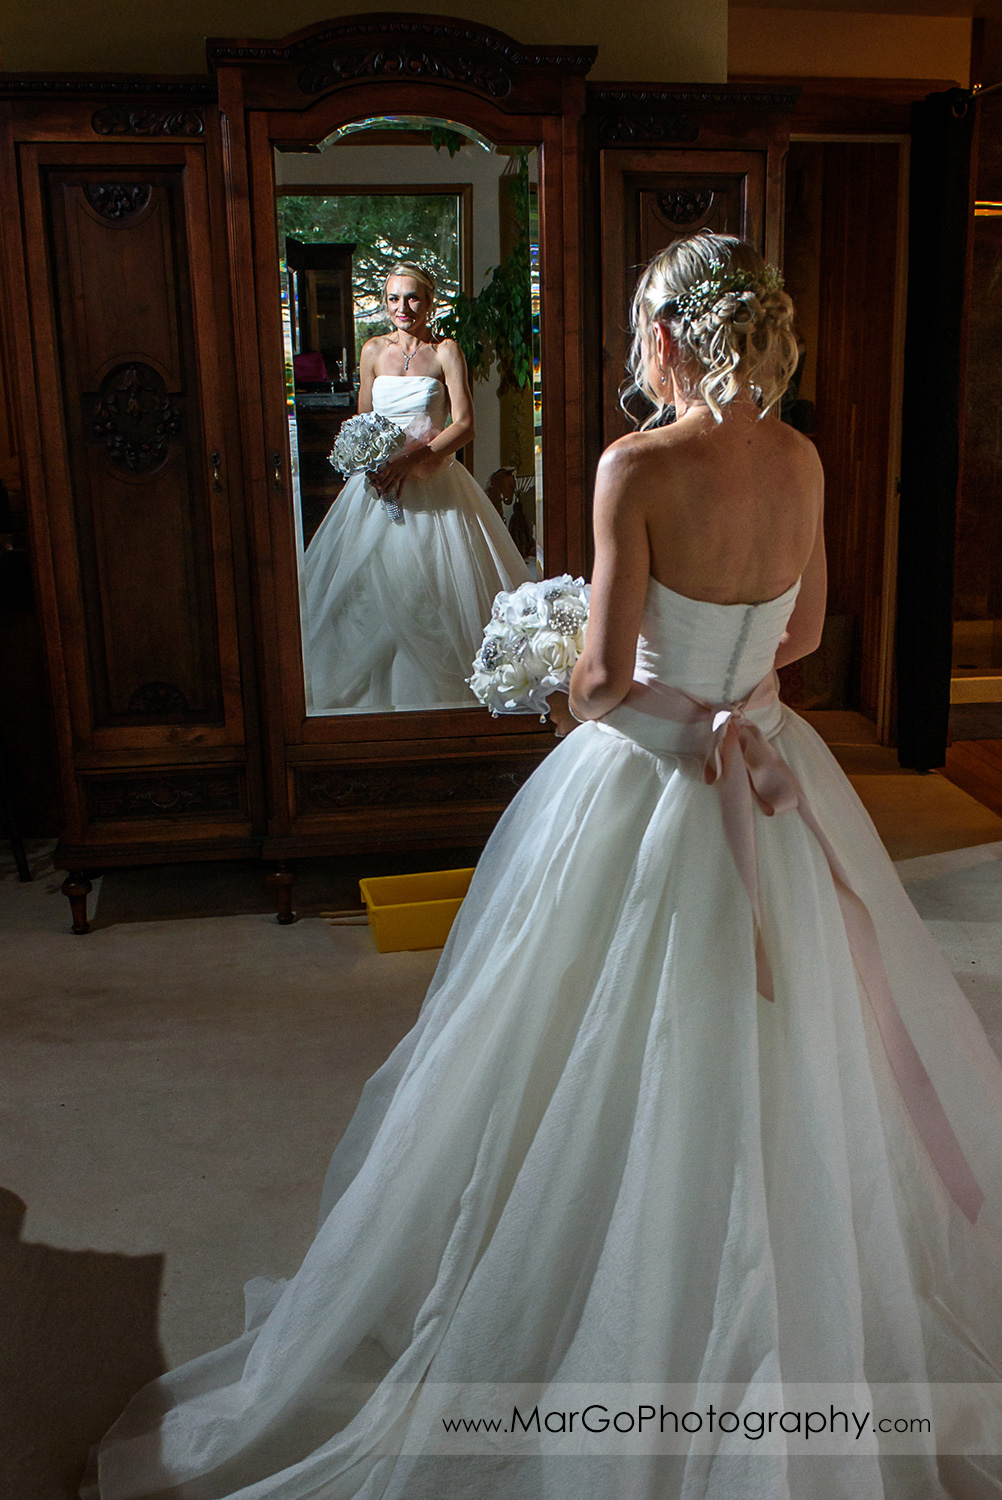 mirror portrait of the bride in white wedding dress holding the bouquet